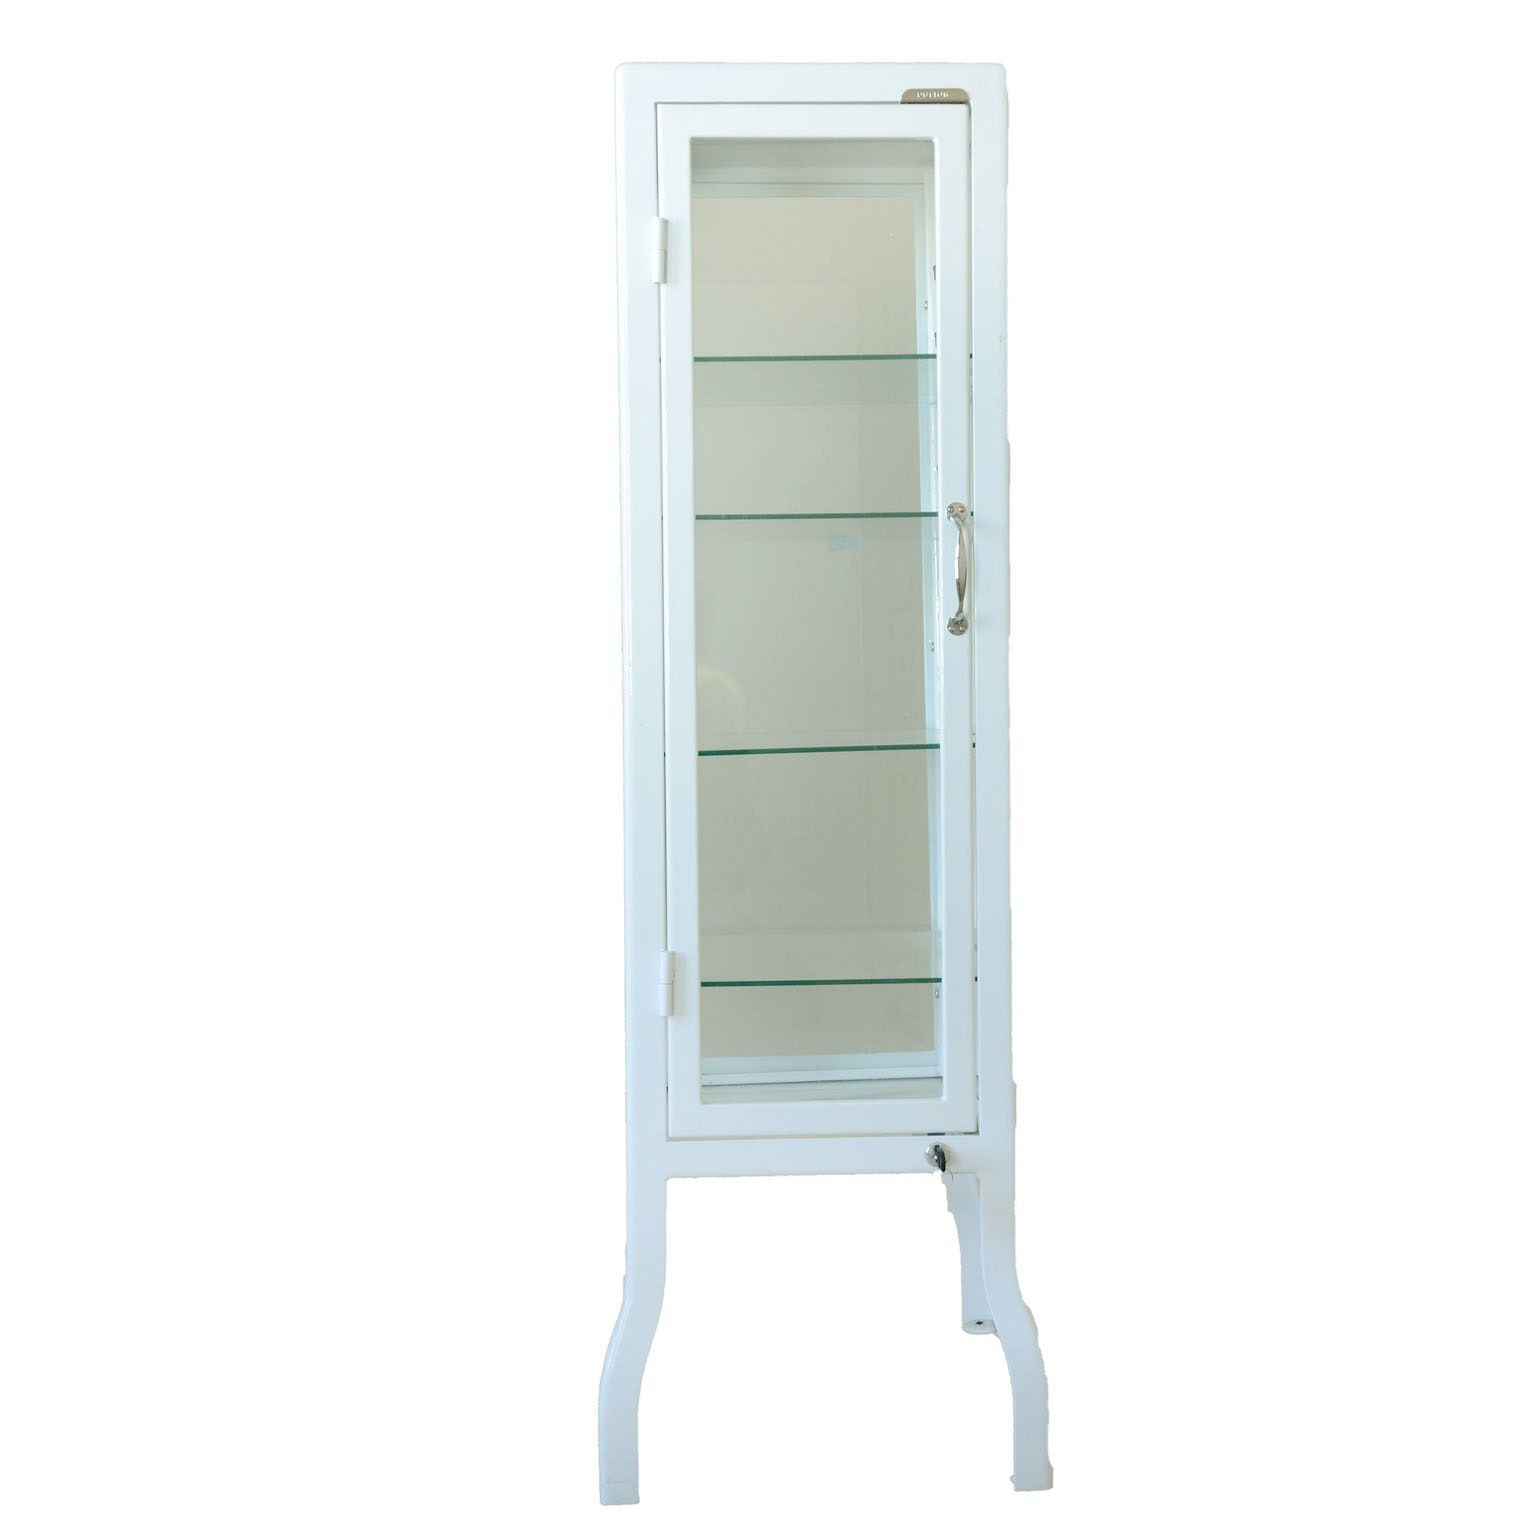 Gentil Steel Dulton Locking Cabinet ...